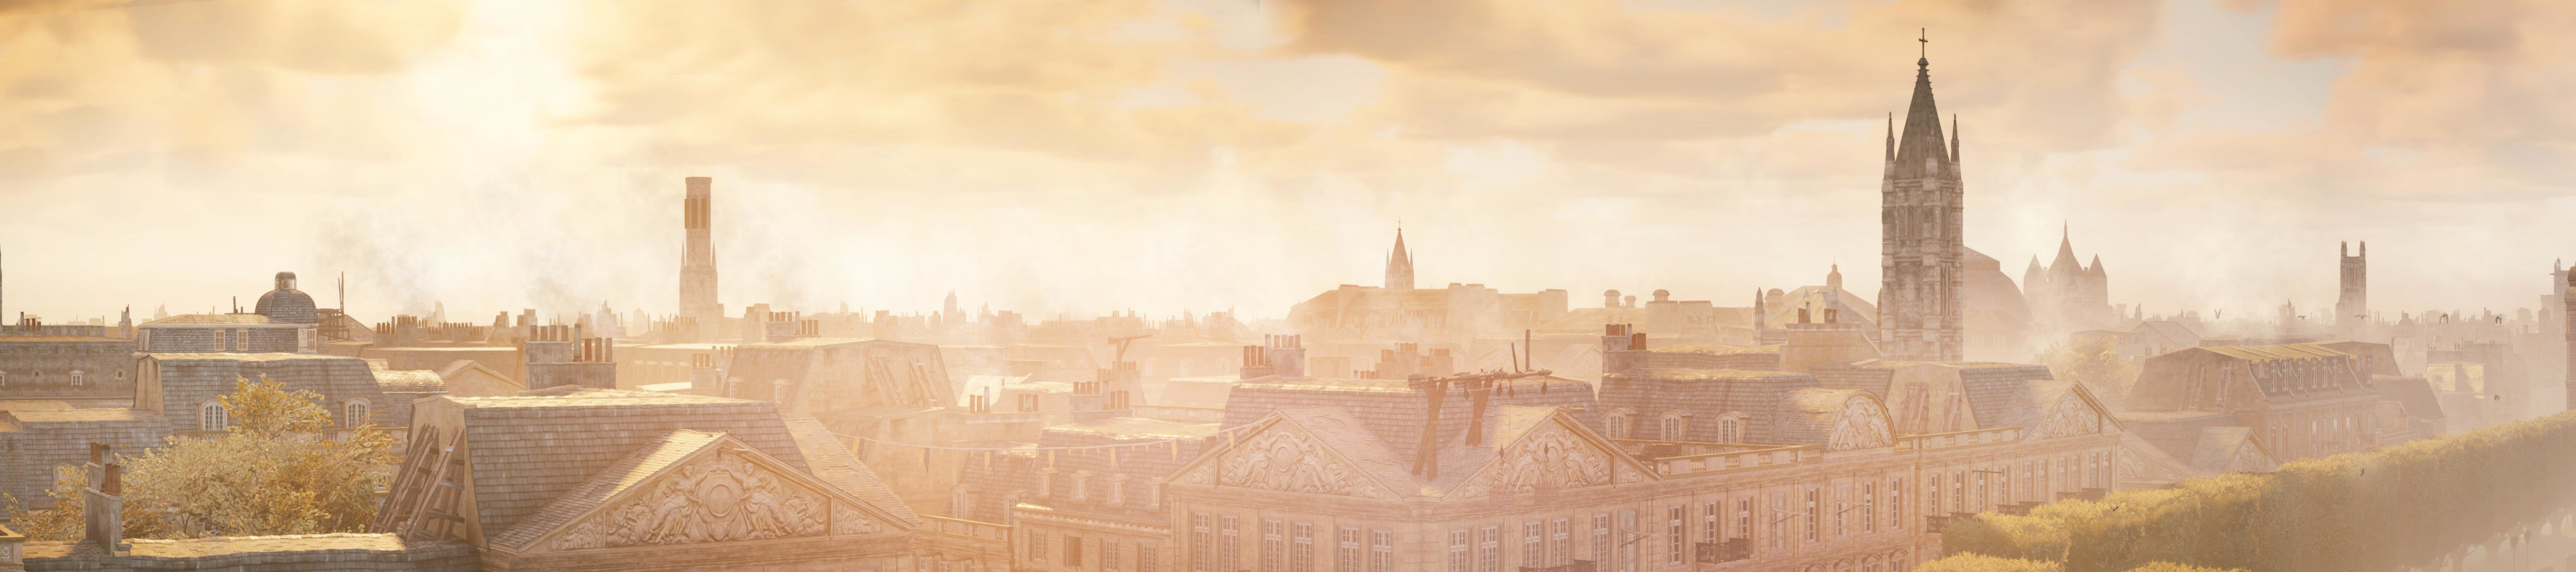 Awesome Assassin's Creed: Unity free wallpaper ID:229454 for triple screen 5760x1280 computer